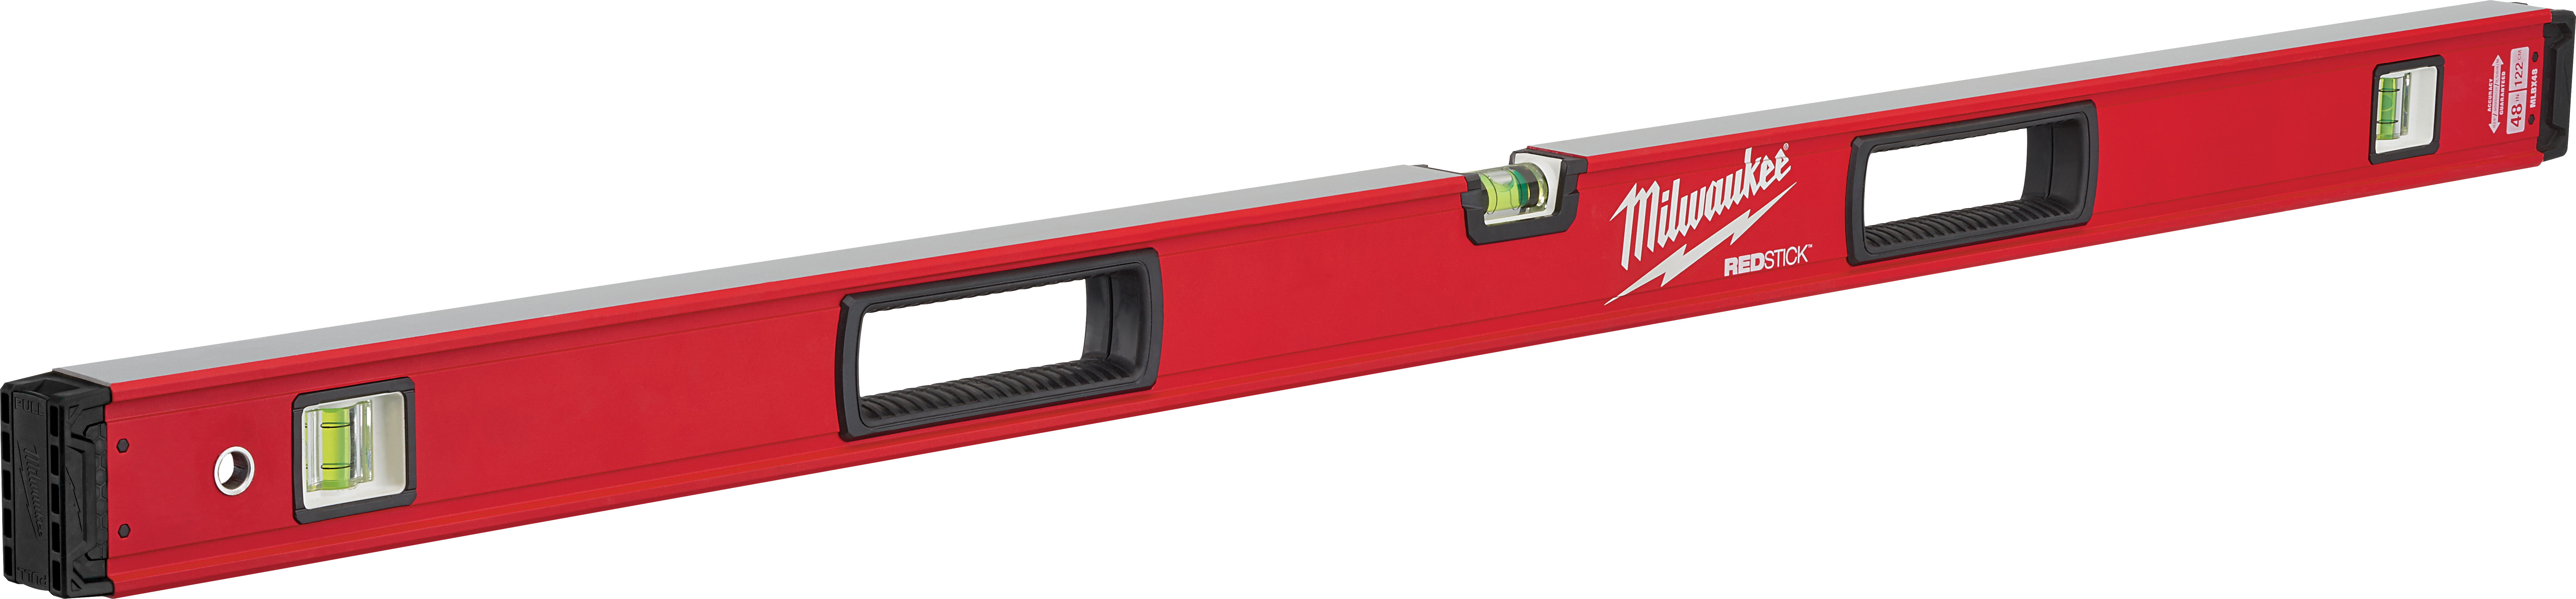 Milwaukee® REDSTICK™ MLBX48 Box Level, 48 in L, 3 Vials, Aluminum, (1) Level, (2) Plumb Vial Position, 0.0005 in/in Accuracy